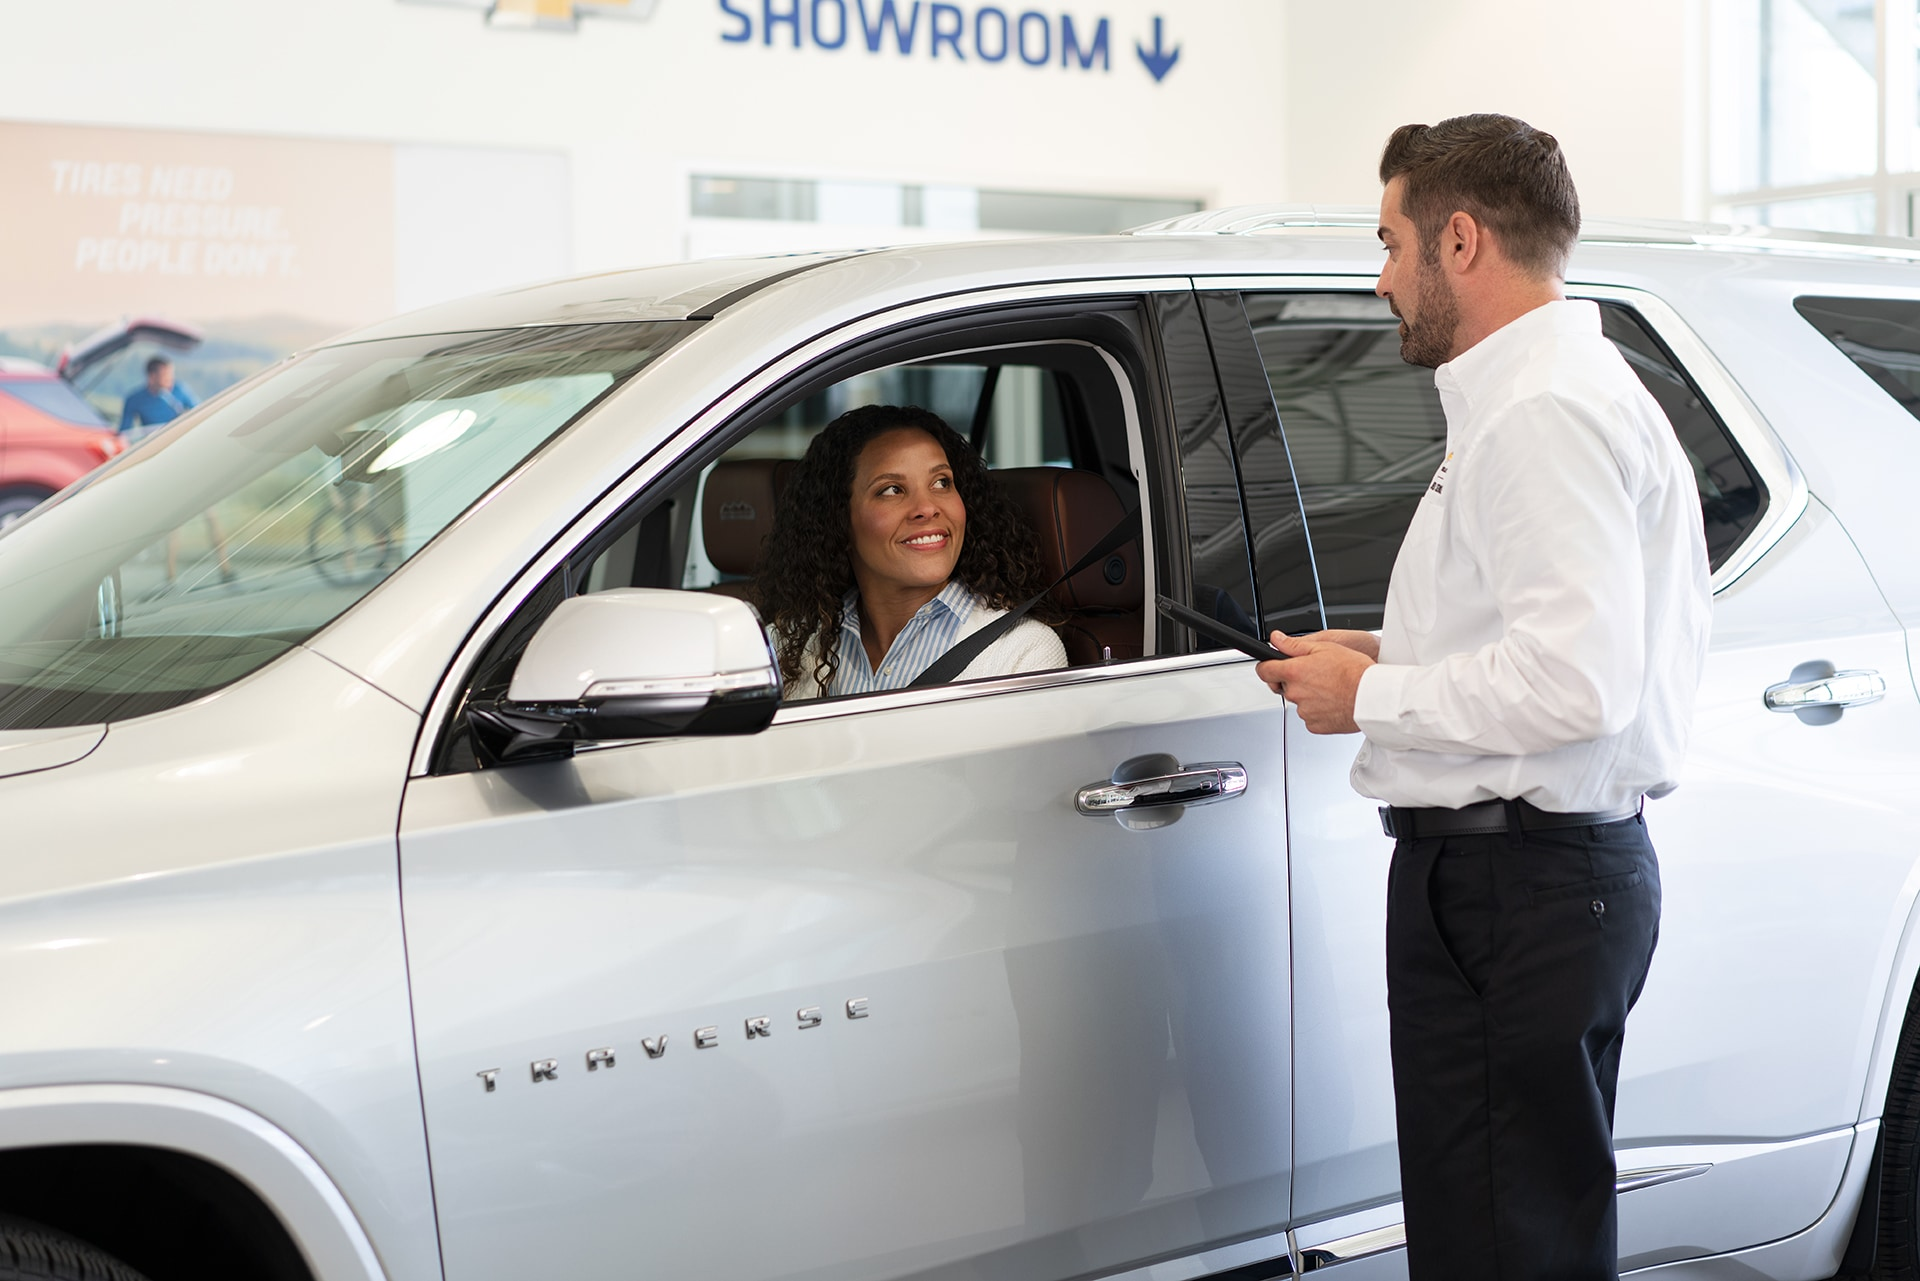 Chevrolet of New Bern is a Car Dealership in New Bern near Bridgeton NC | Chevrolet Service Advisor assisting customer driving White 2020 Chevrolet Traverse in Chevrolet Service Center